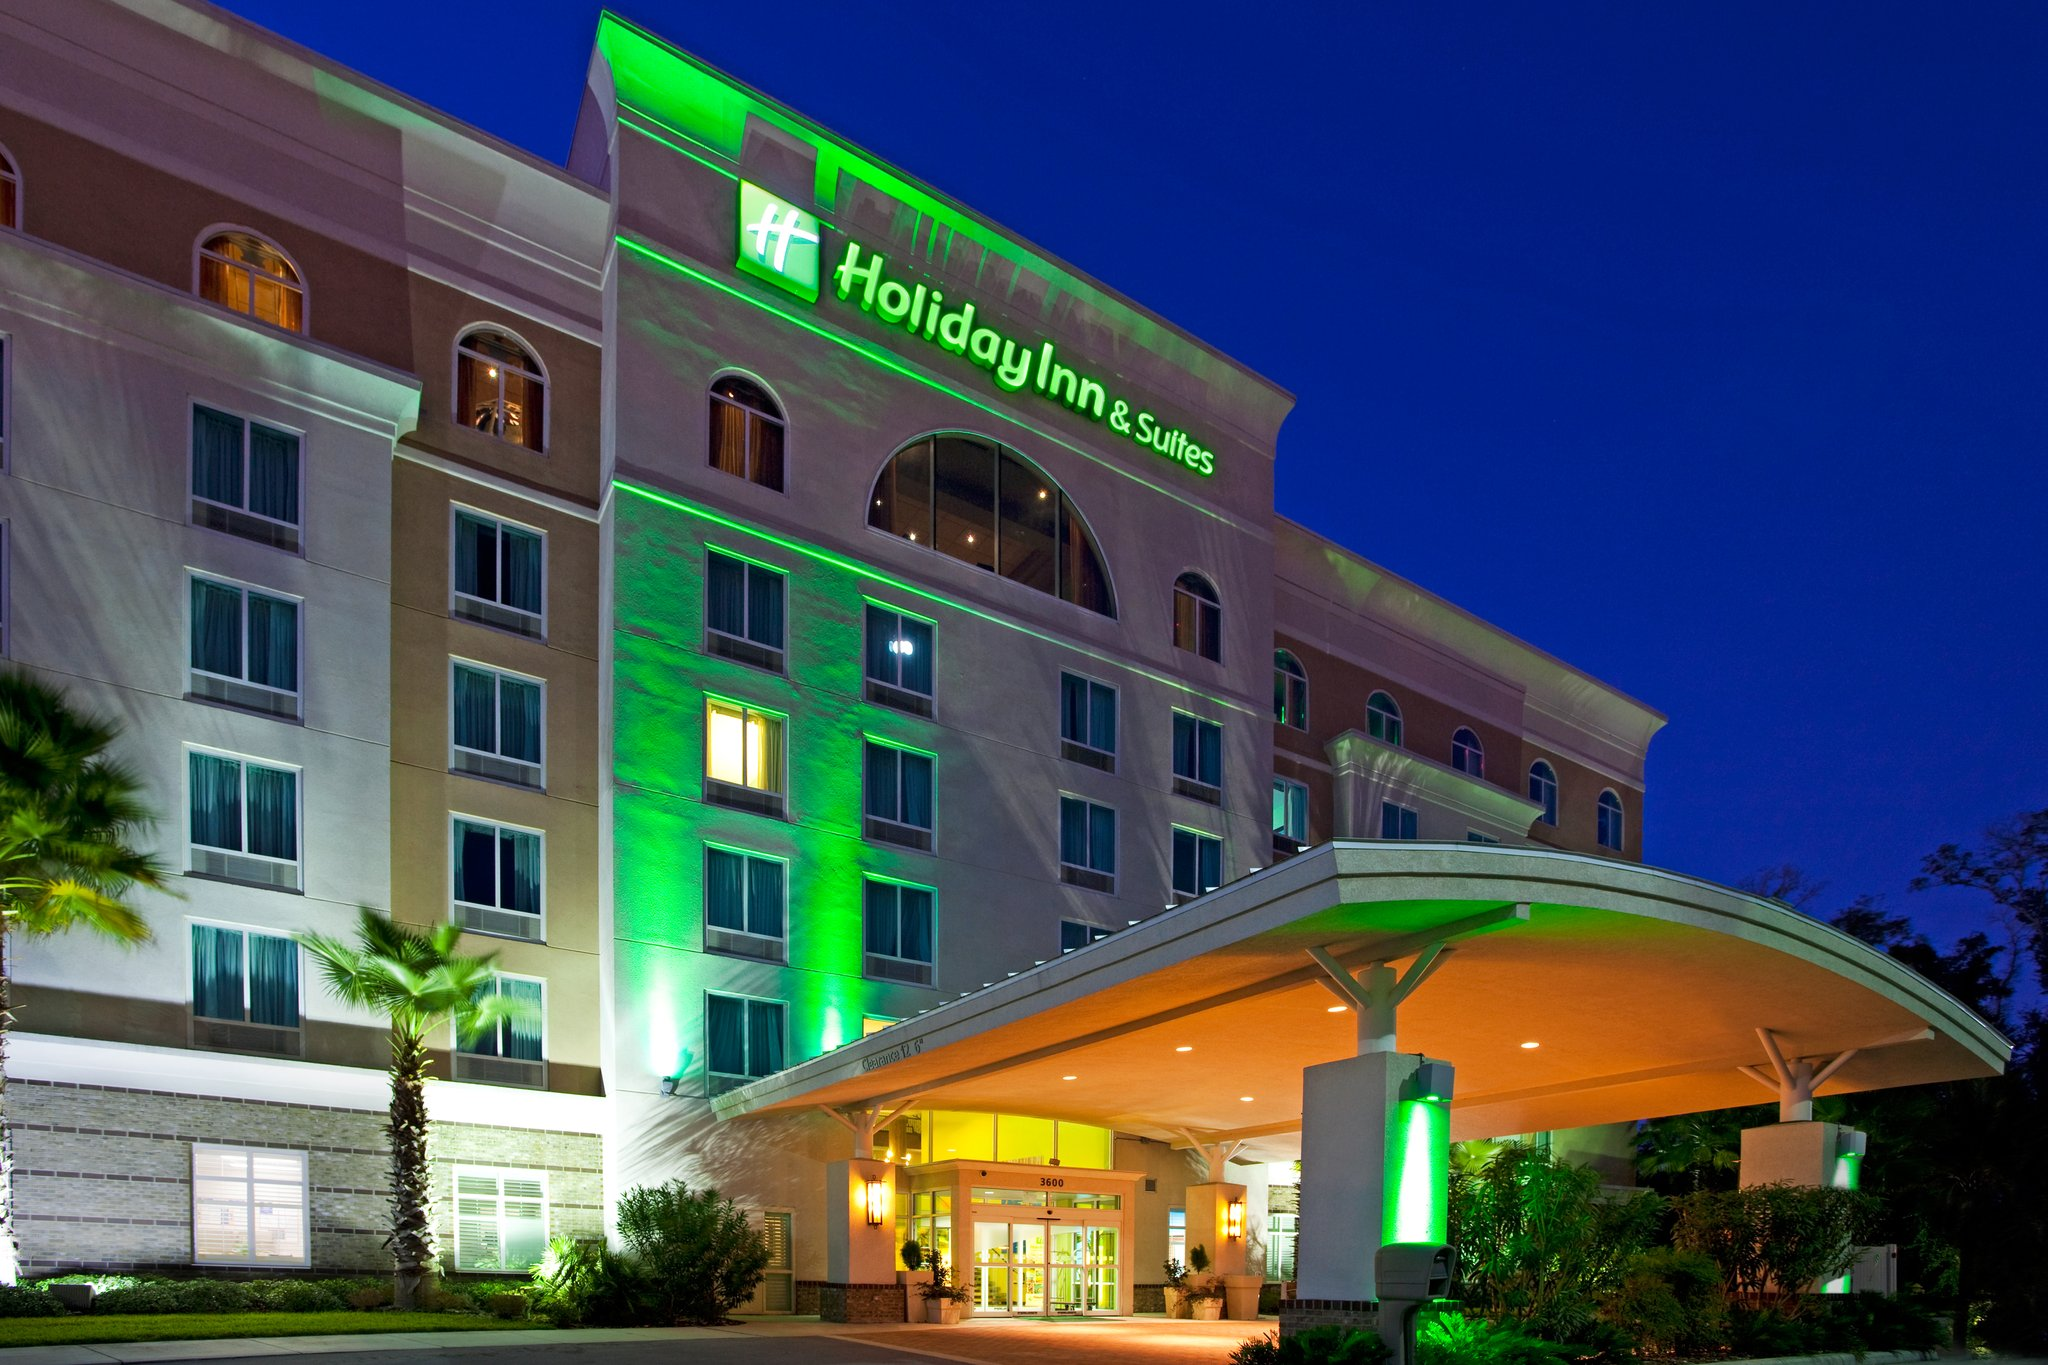 Holiday Inn & Suites Ocala Conf Center